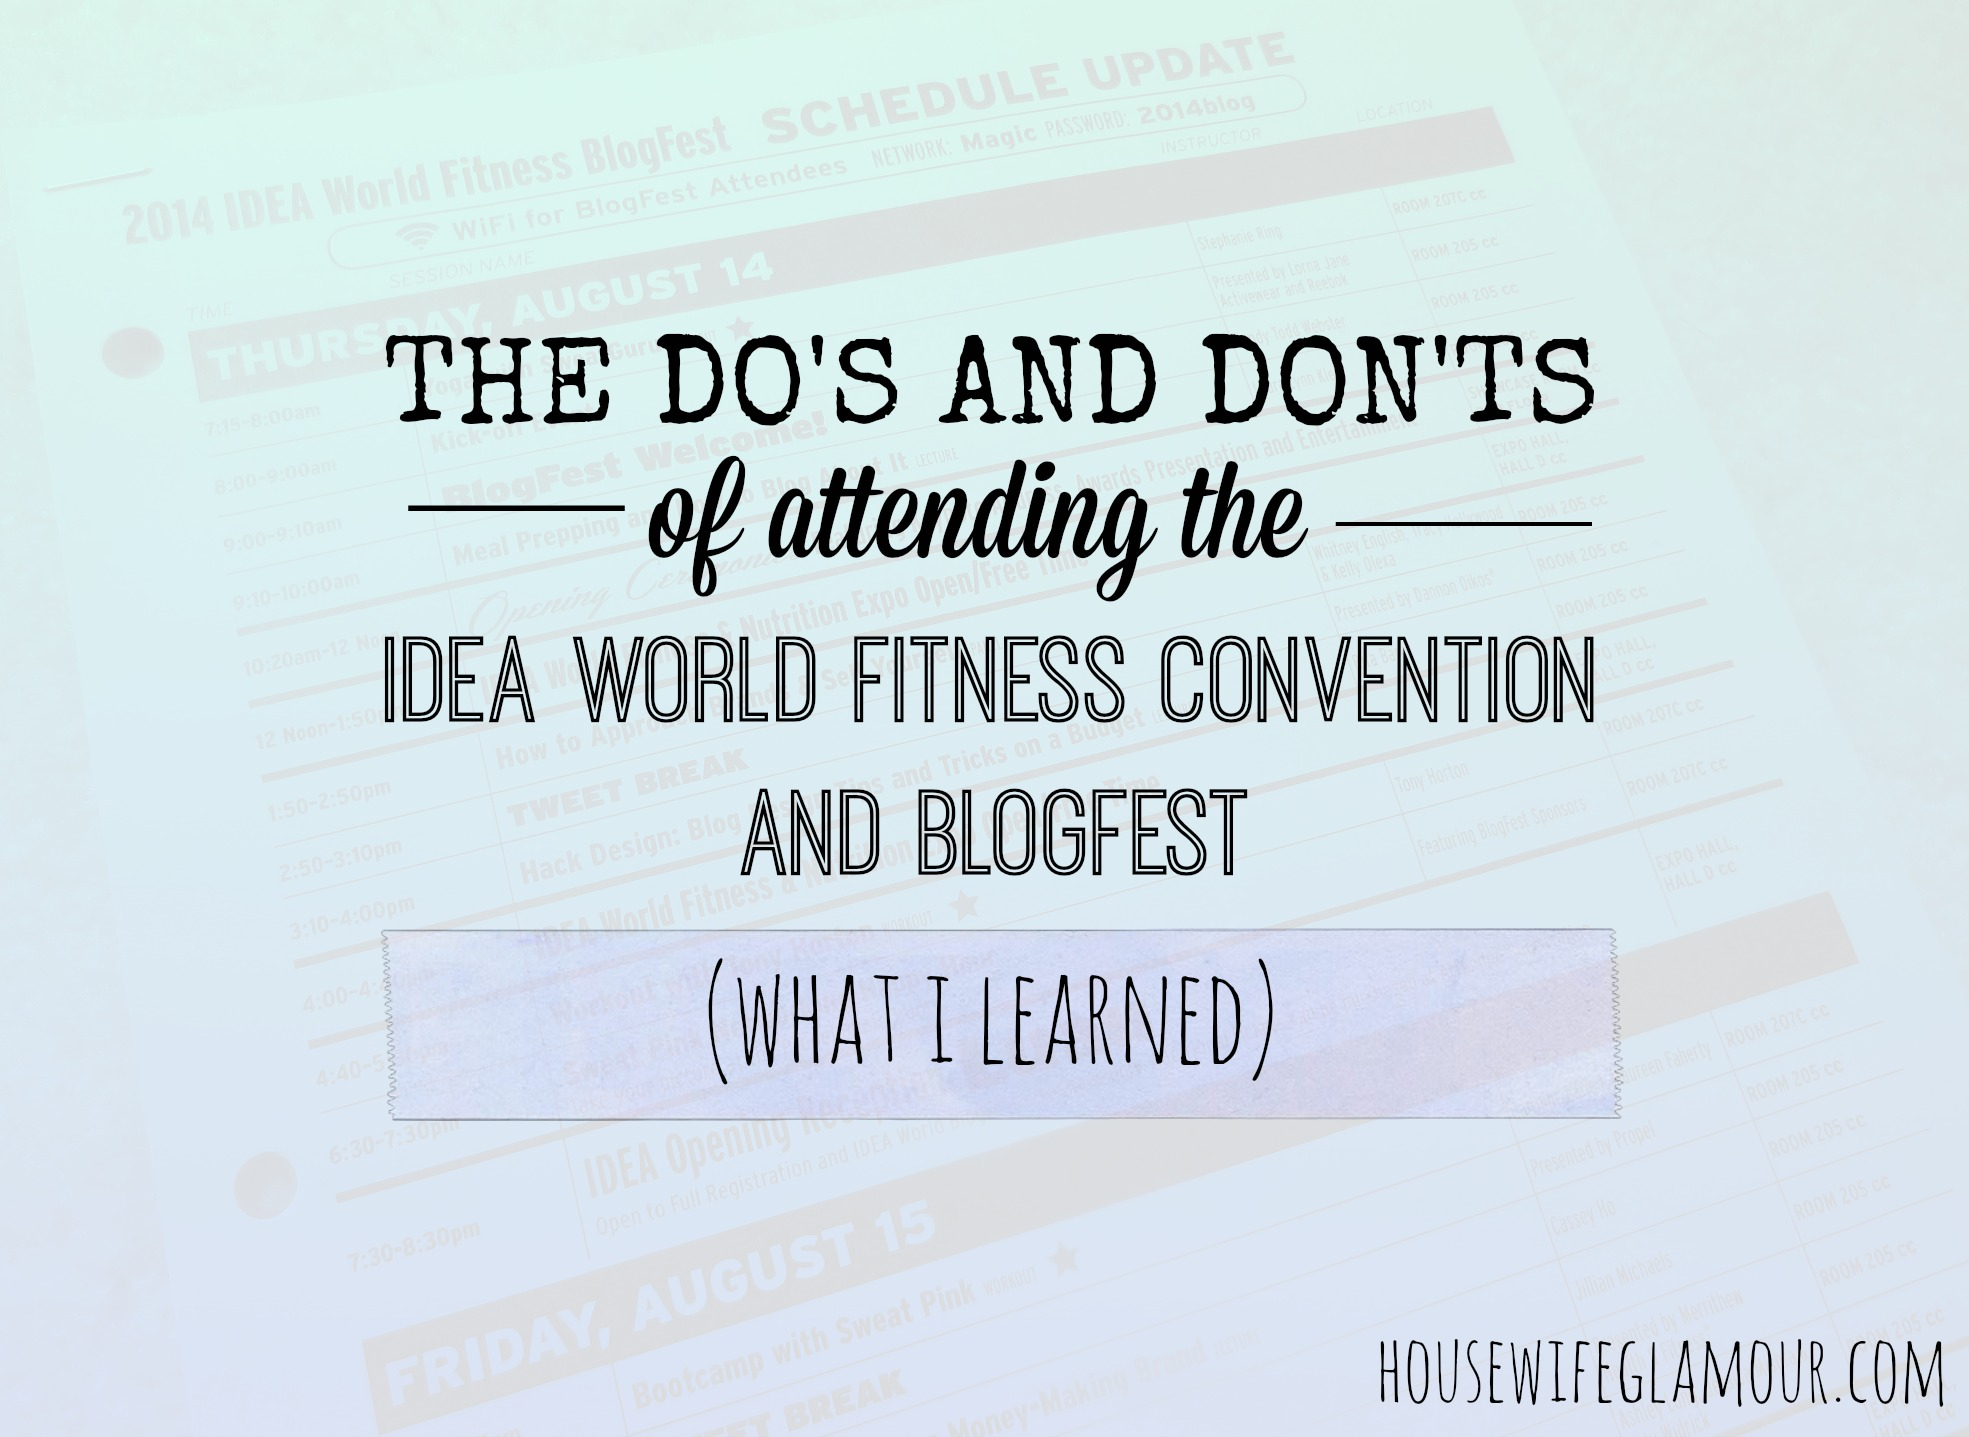 The Do's and Don'ts of attending the IDEA World Fitness Convention and IDEA World Fitness BlogFest